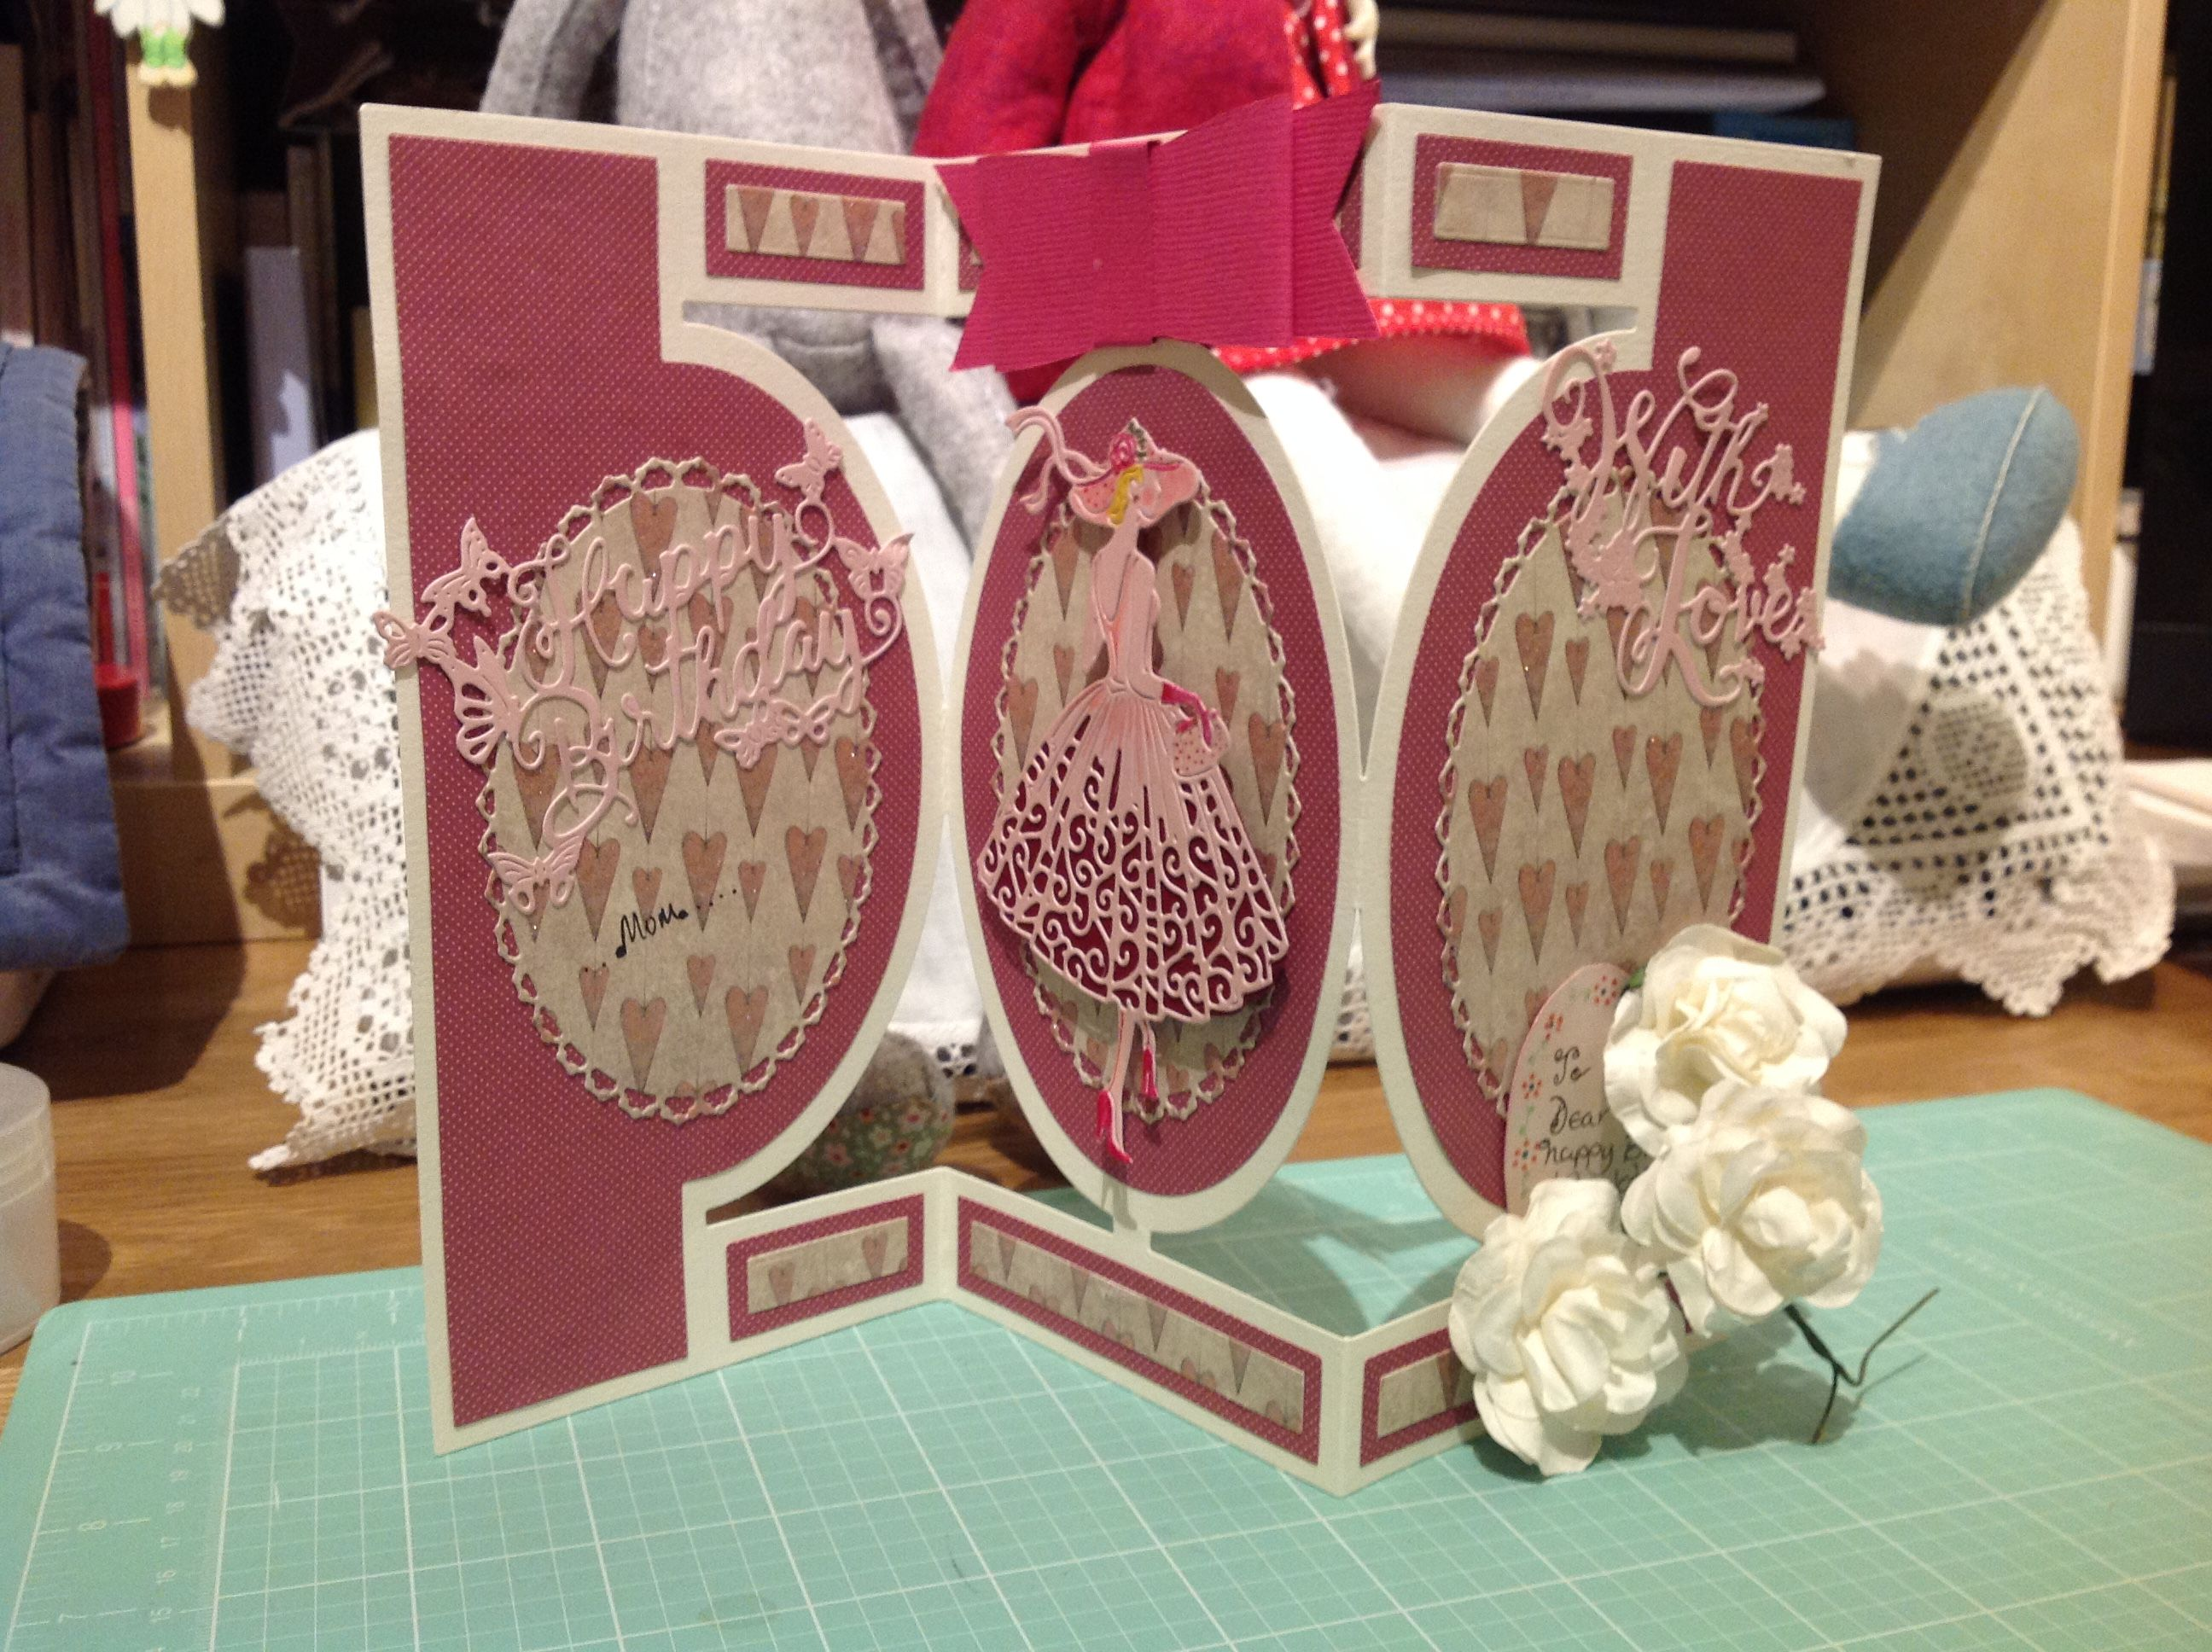 Made by Marga Davies - This card was made using Tattered lace card die, a walk in the park die, with love and Happy birthday dies.